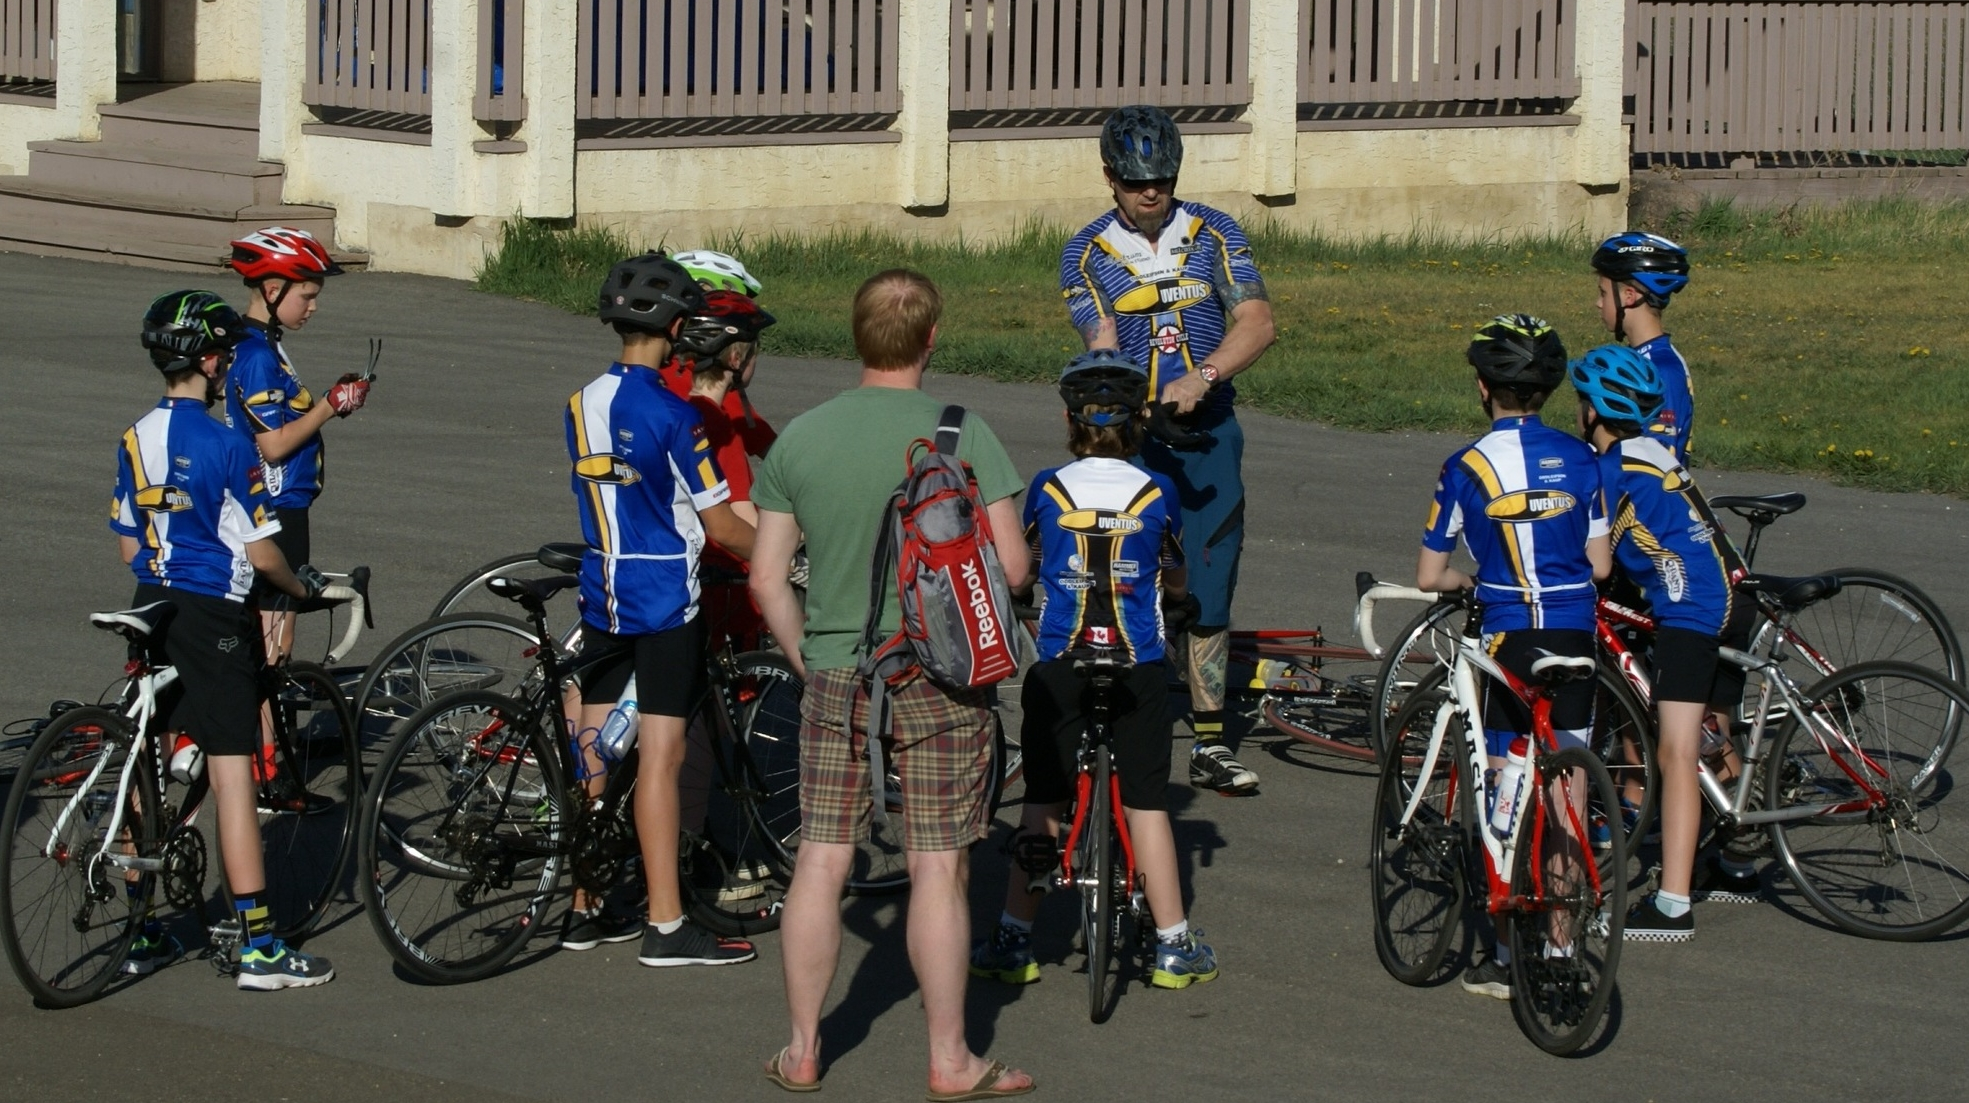 Helmets on, bikes checked . . . ready to ride!